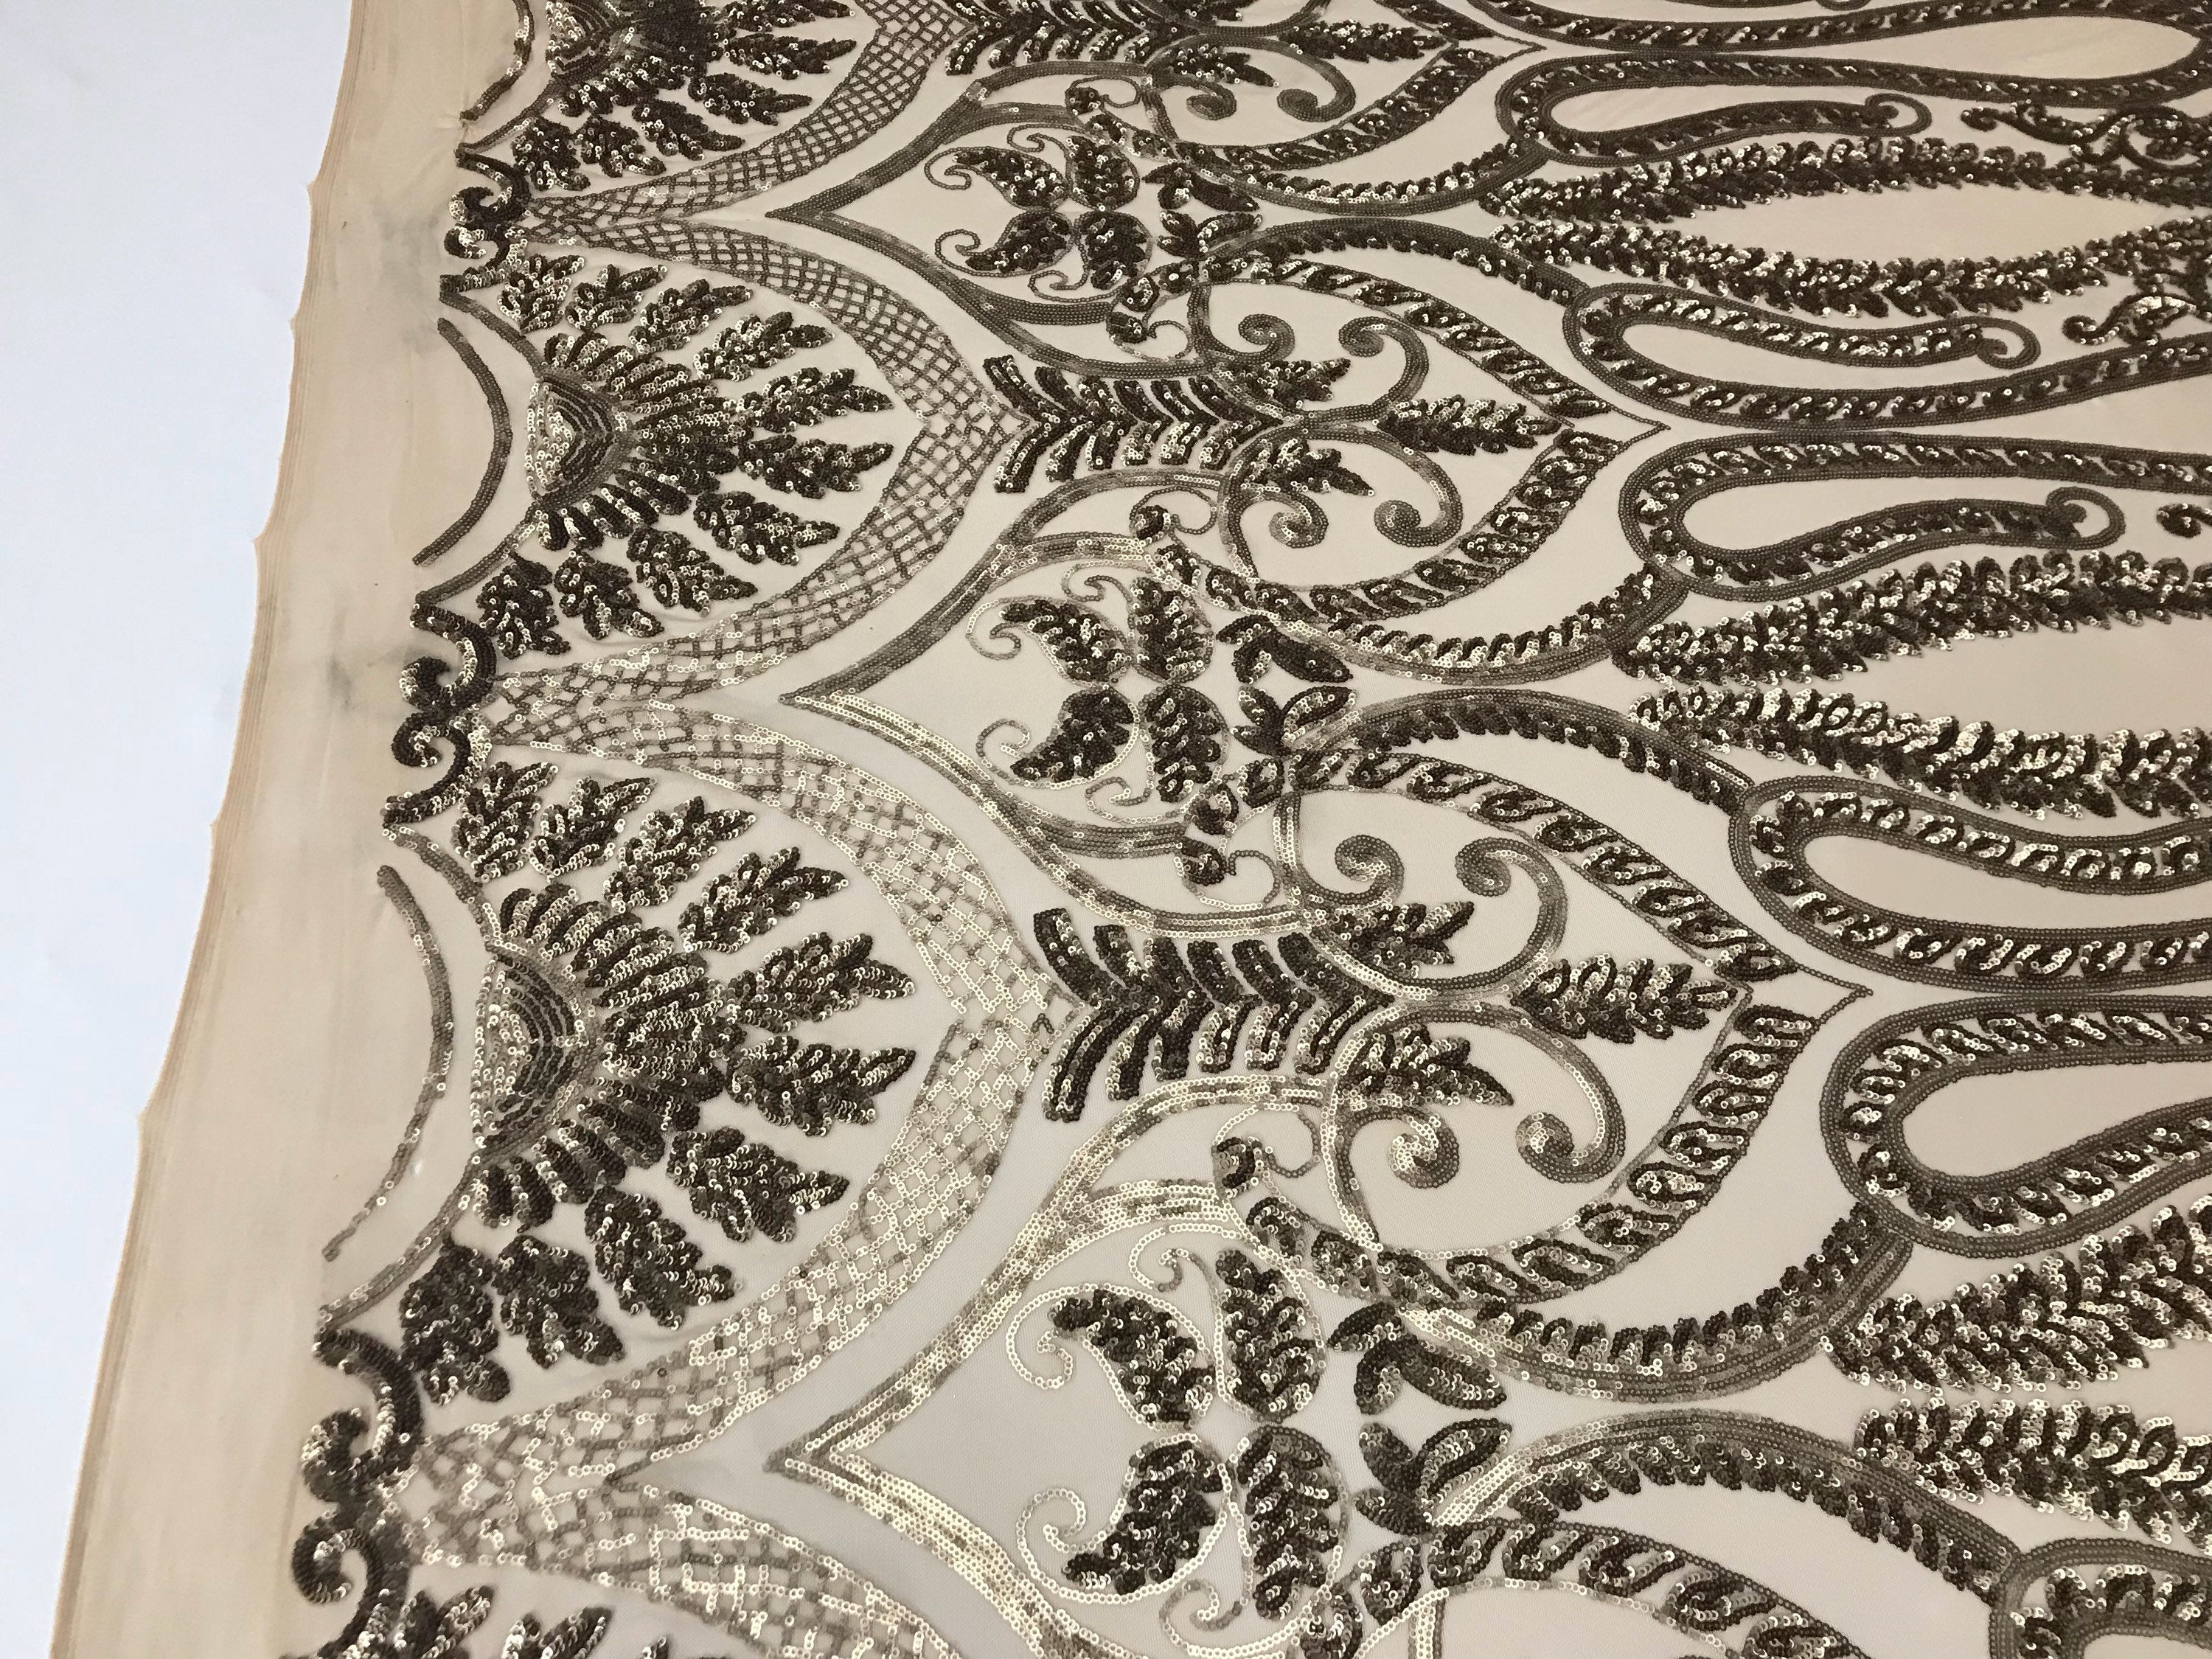 Taupe 4 Way Stretch Fabric By The Yard Sequins Fabric Embroidery Nude Power Mesh Dress Top Fashion Prom Wedding Lace Decoration - KINGDOM OF FABRICS